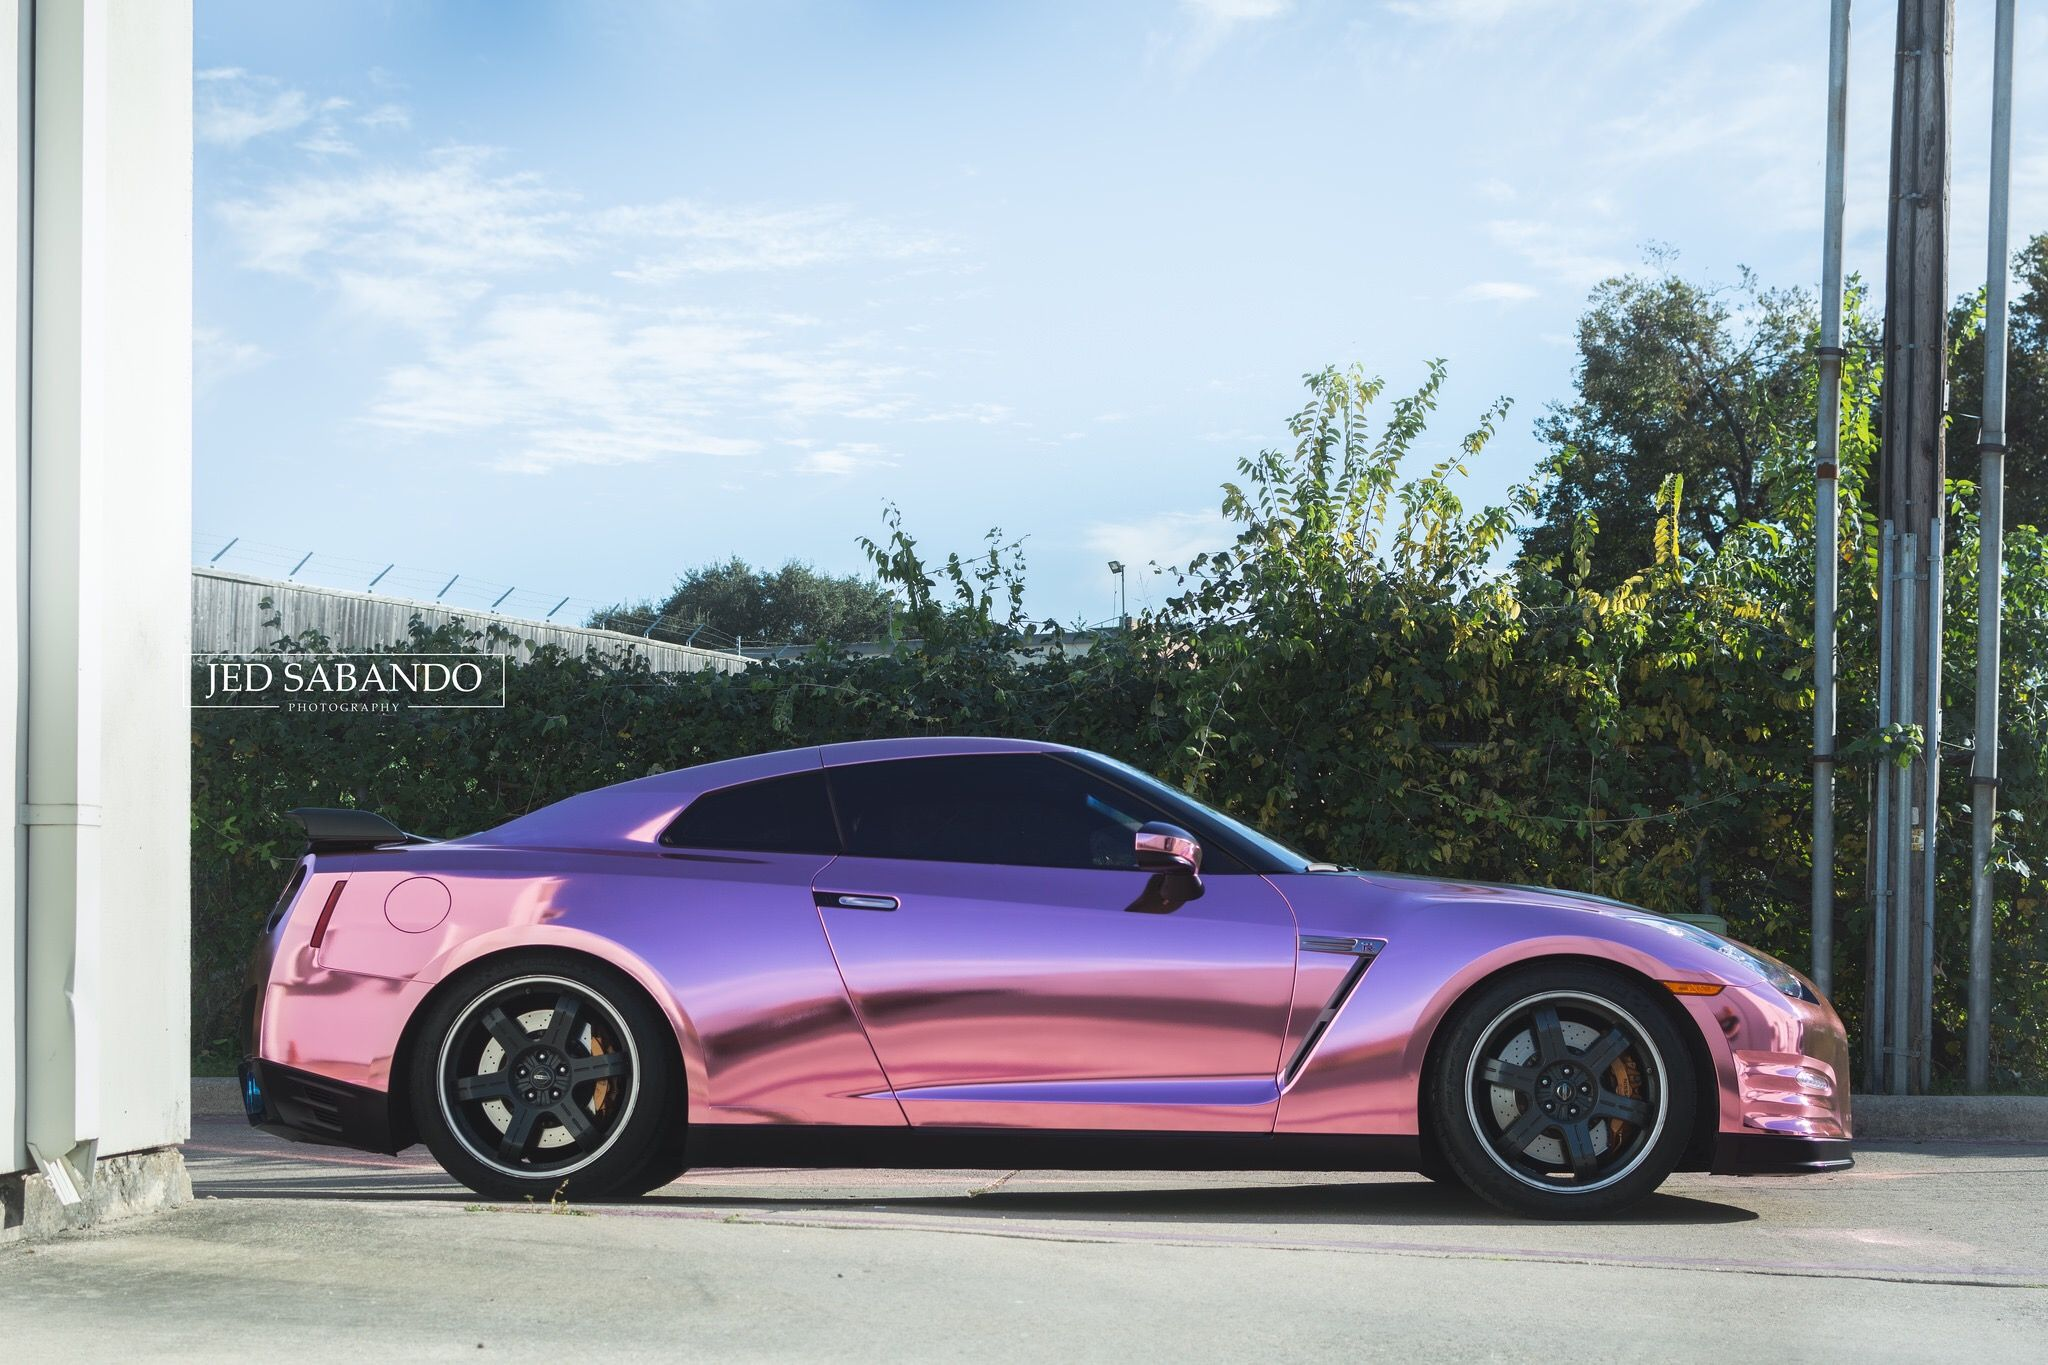 Nissan Gtr Wrapped In A Custom Rose Gold Chrome By Sharp Wraps Gt R Car Wrap